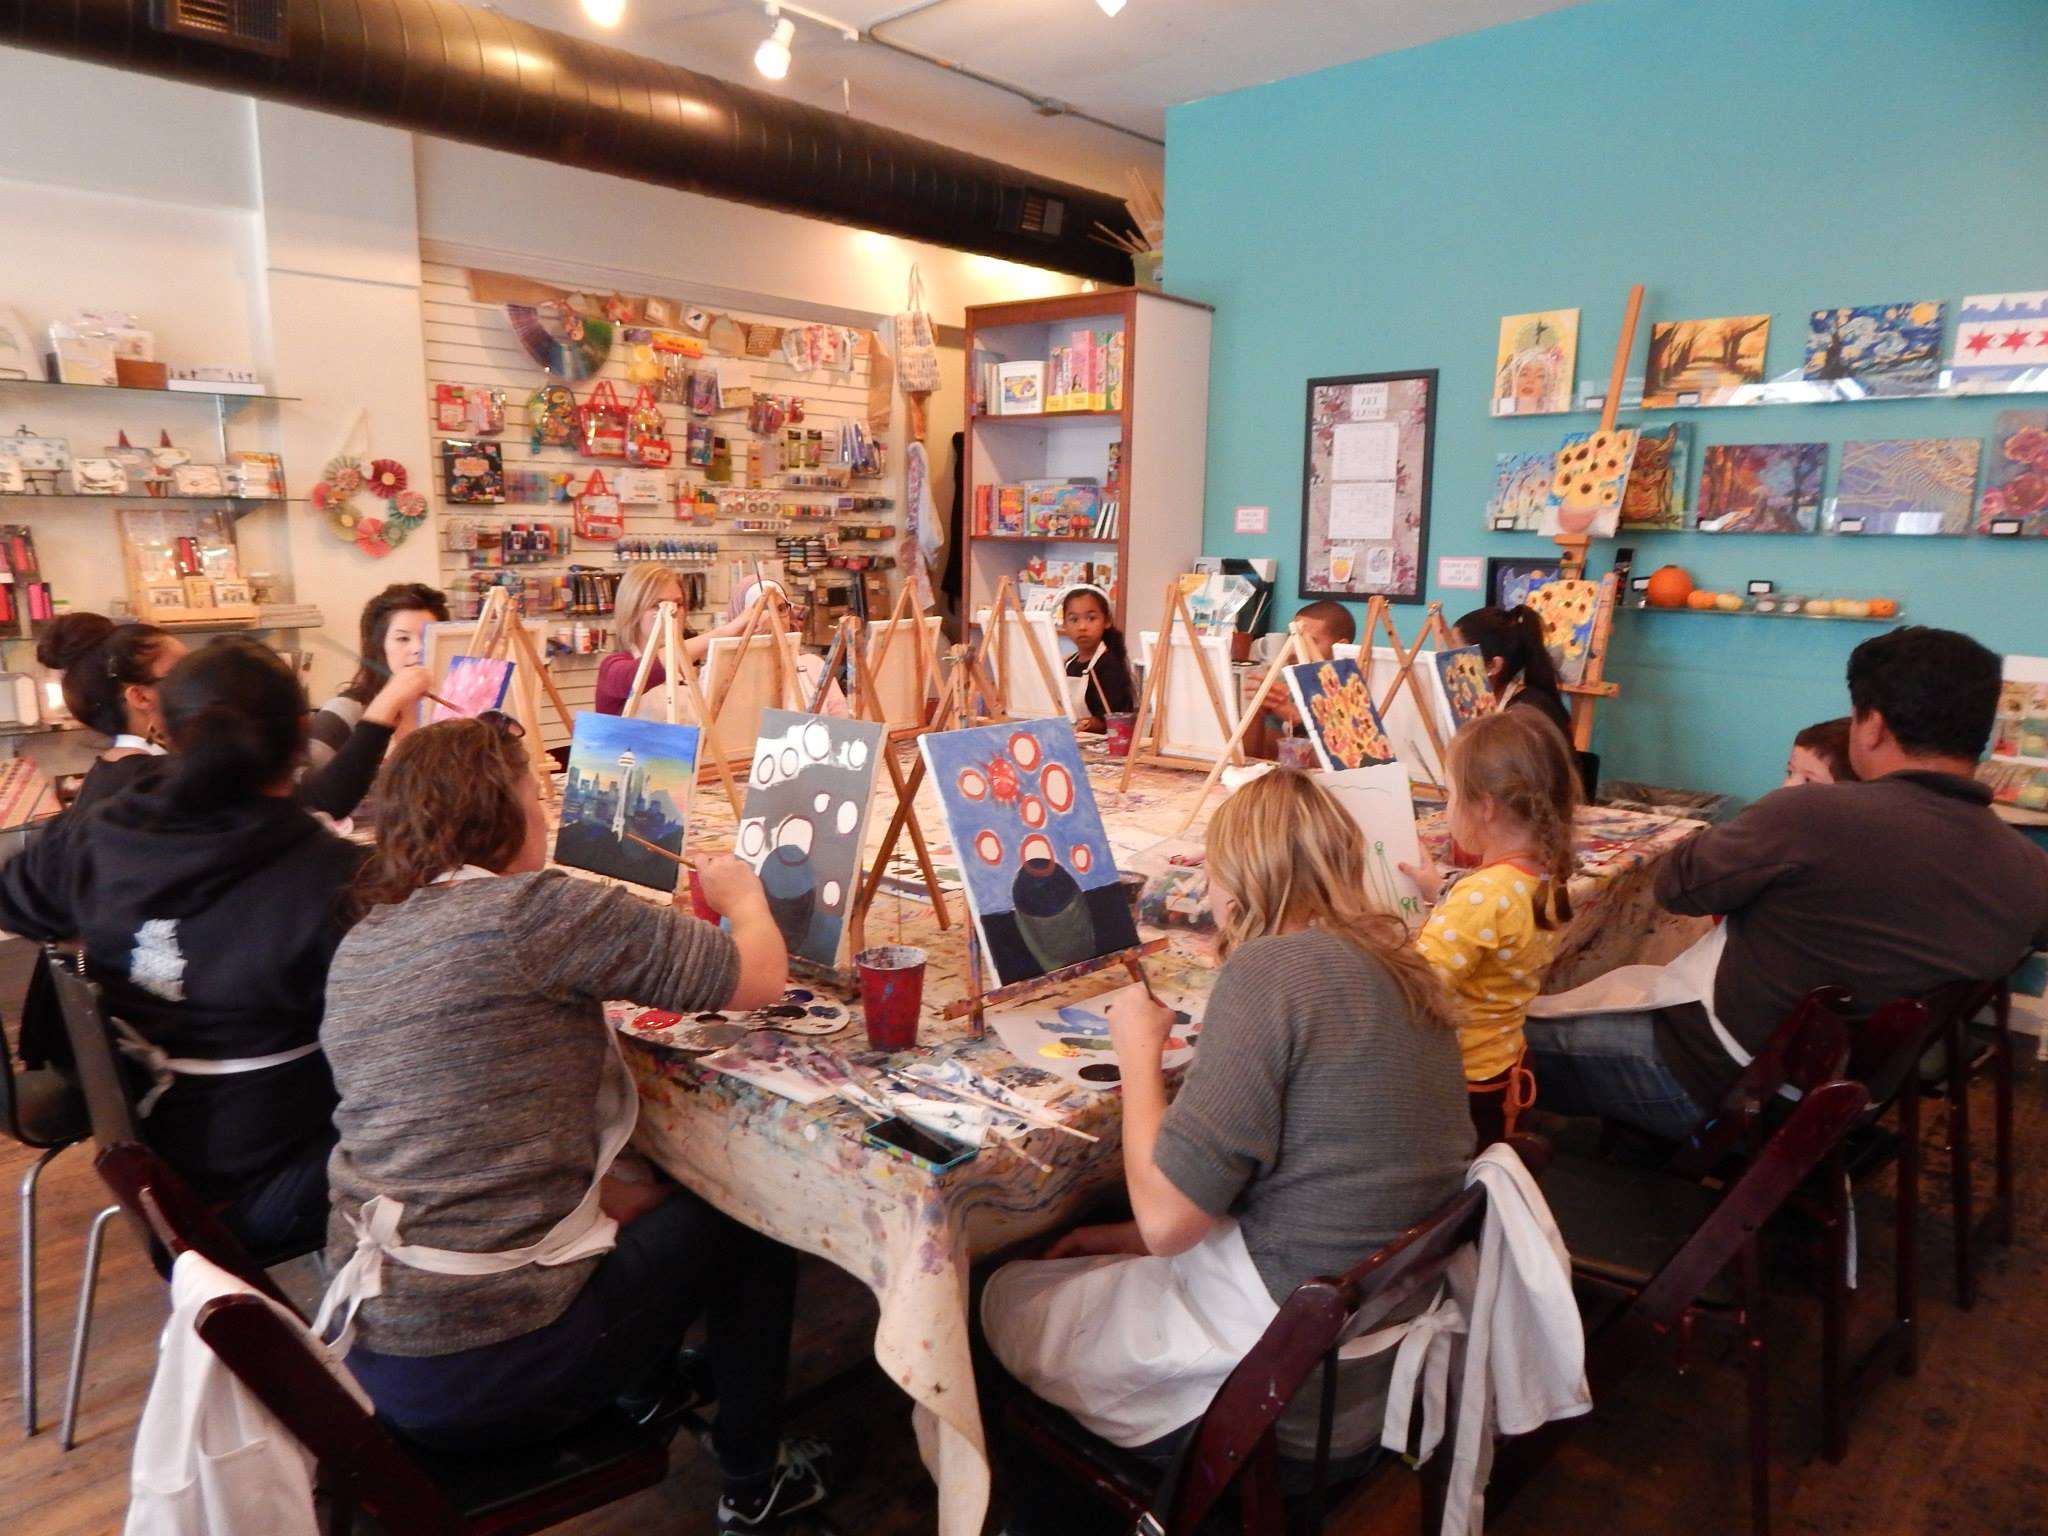 All Ages Sunflower Chicago Painting.jpg